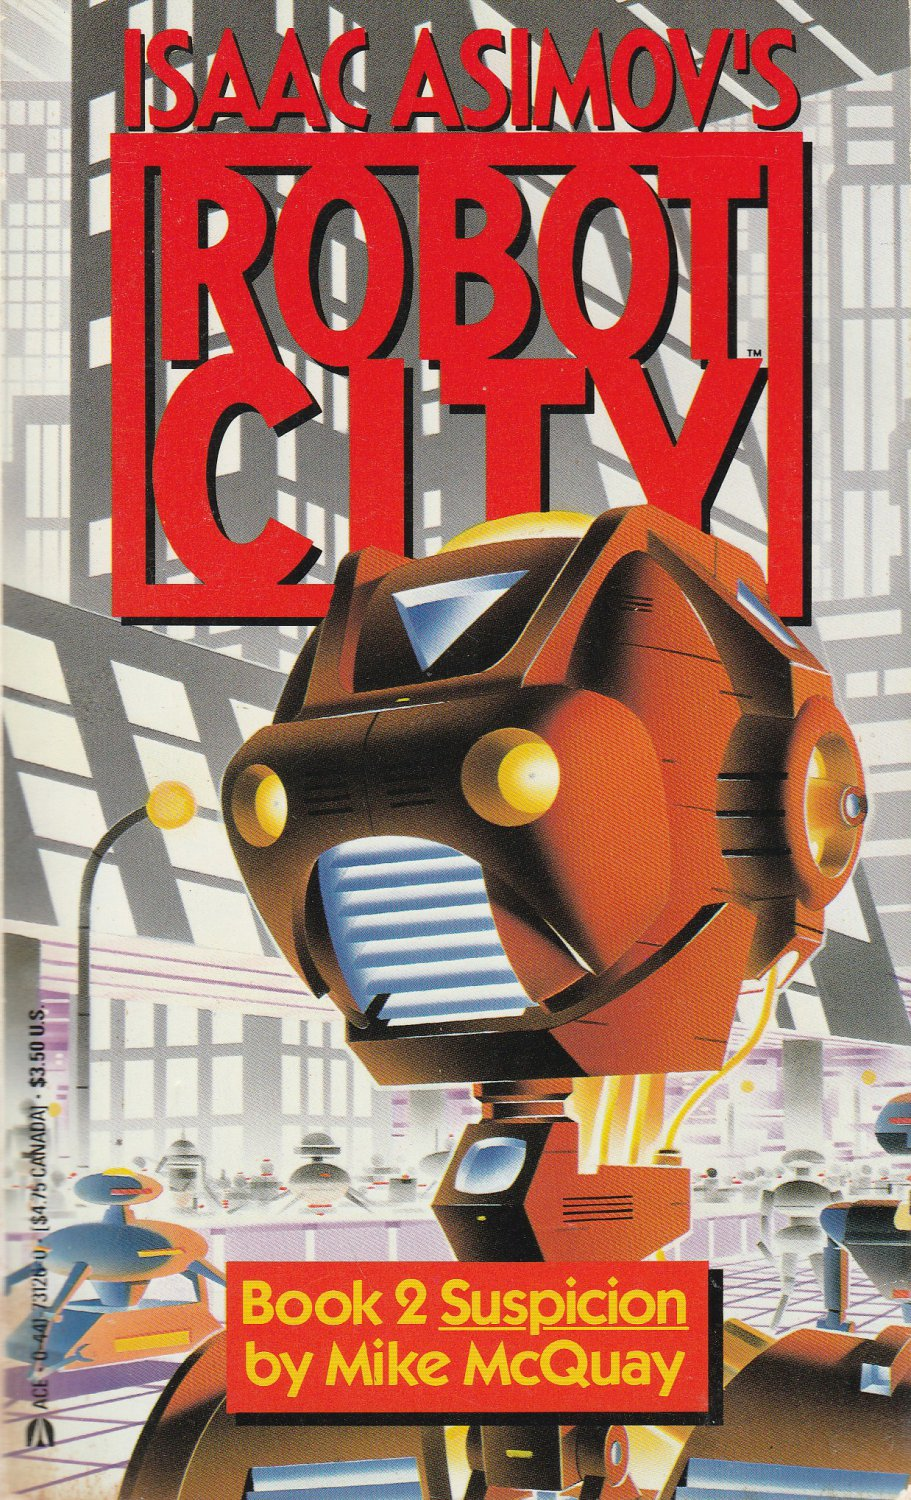 Isaac Asimov's Robot City Book 2 by Mike McQuay